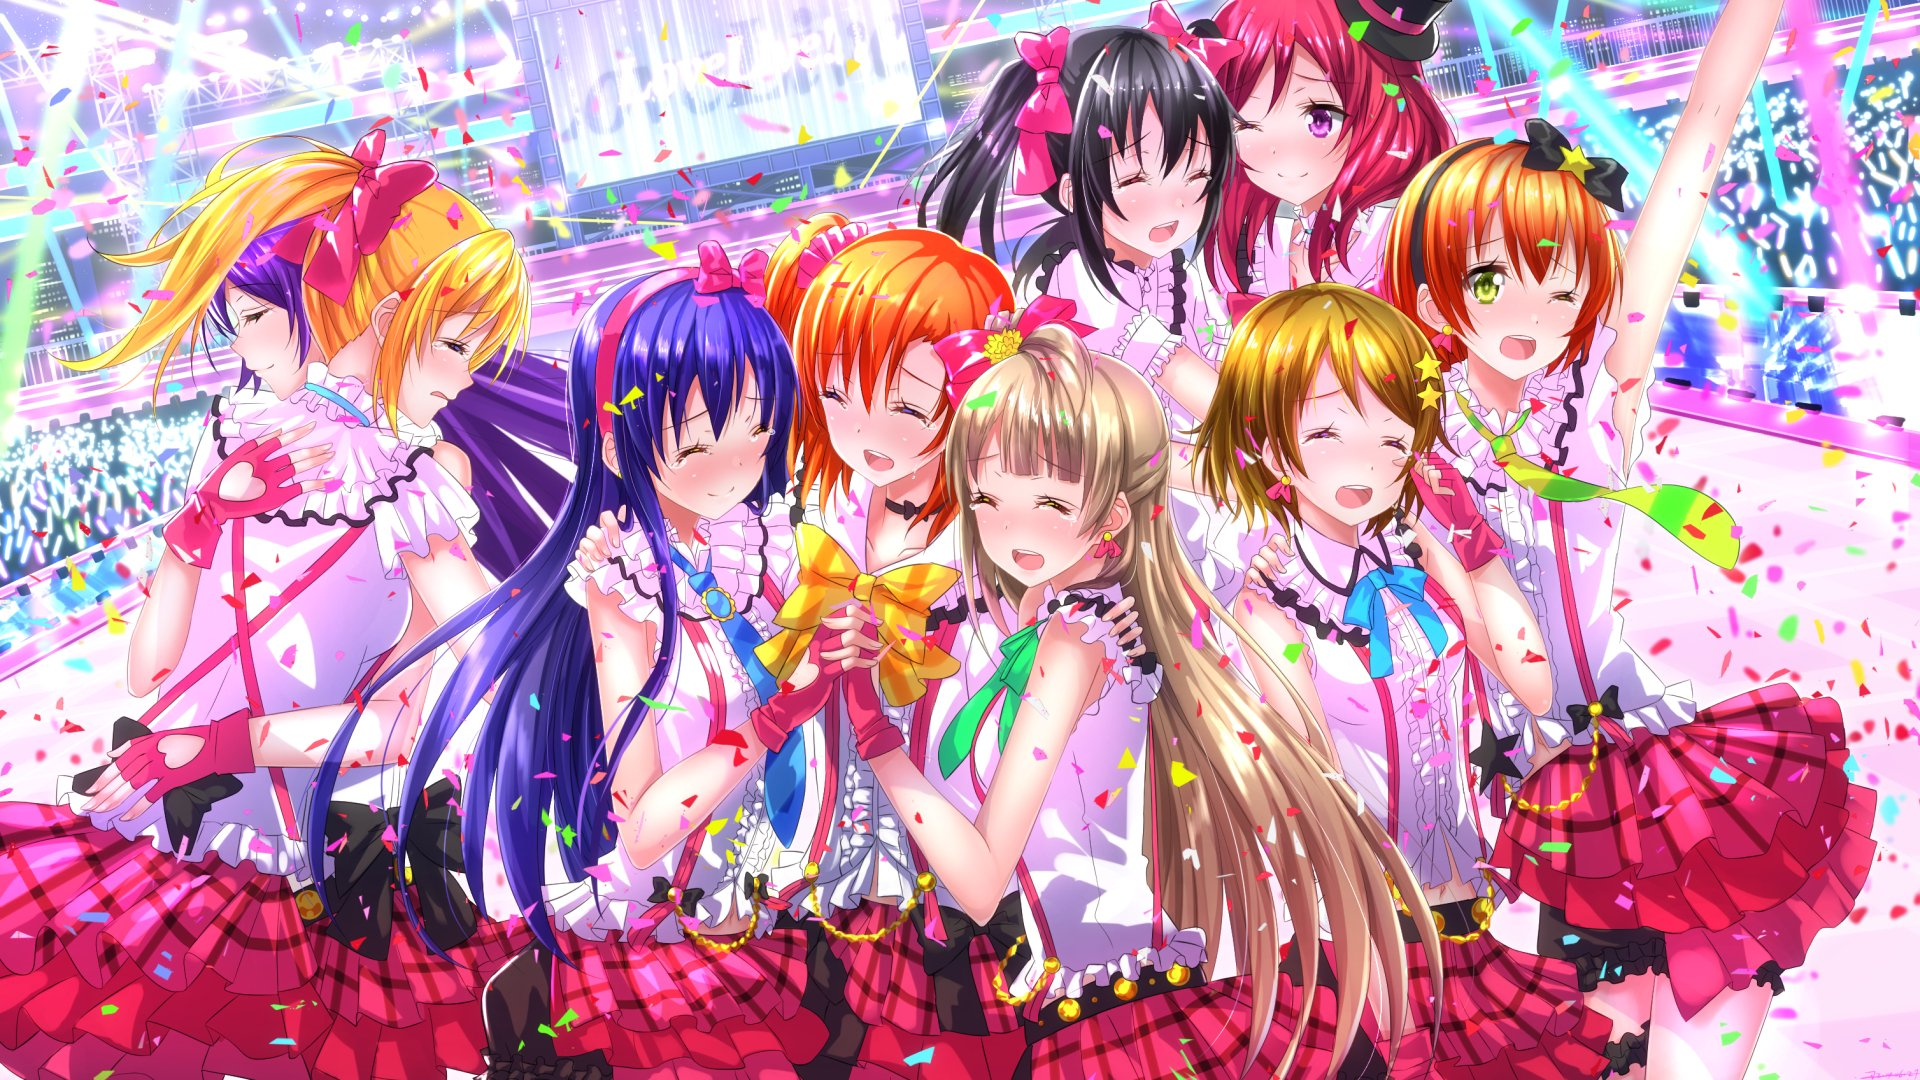 Love Images Live Wallpaper : Love Live! r wallpaper 1920x1080 383547 WallpaperUP